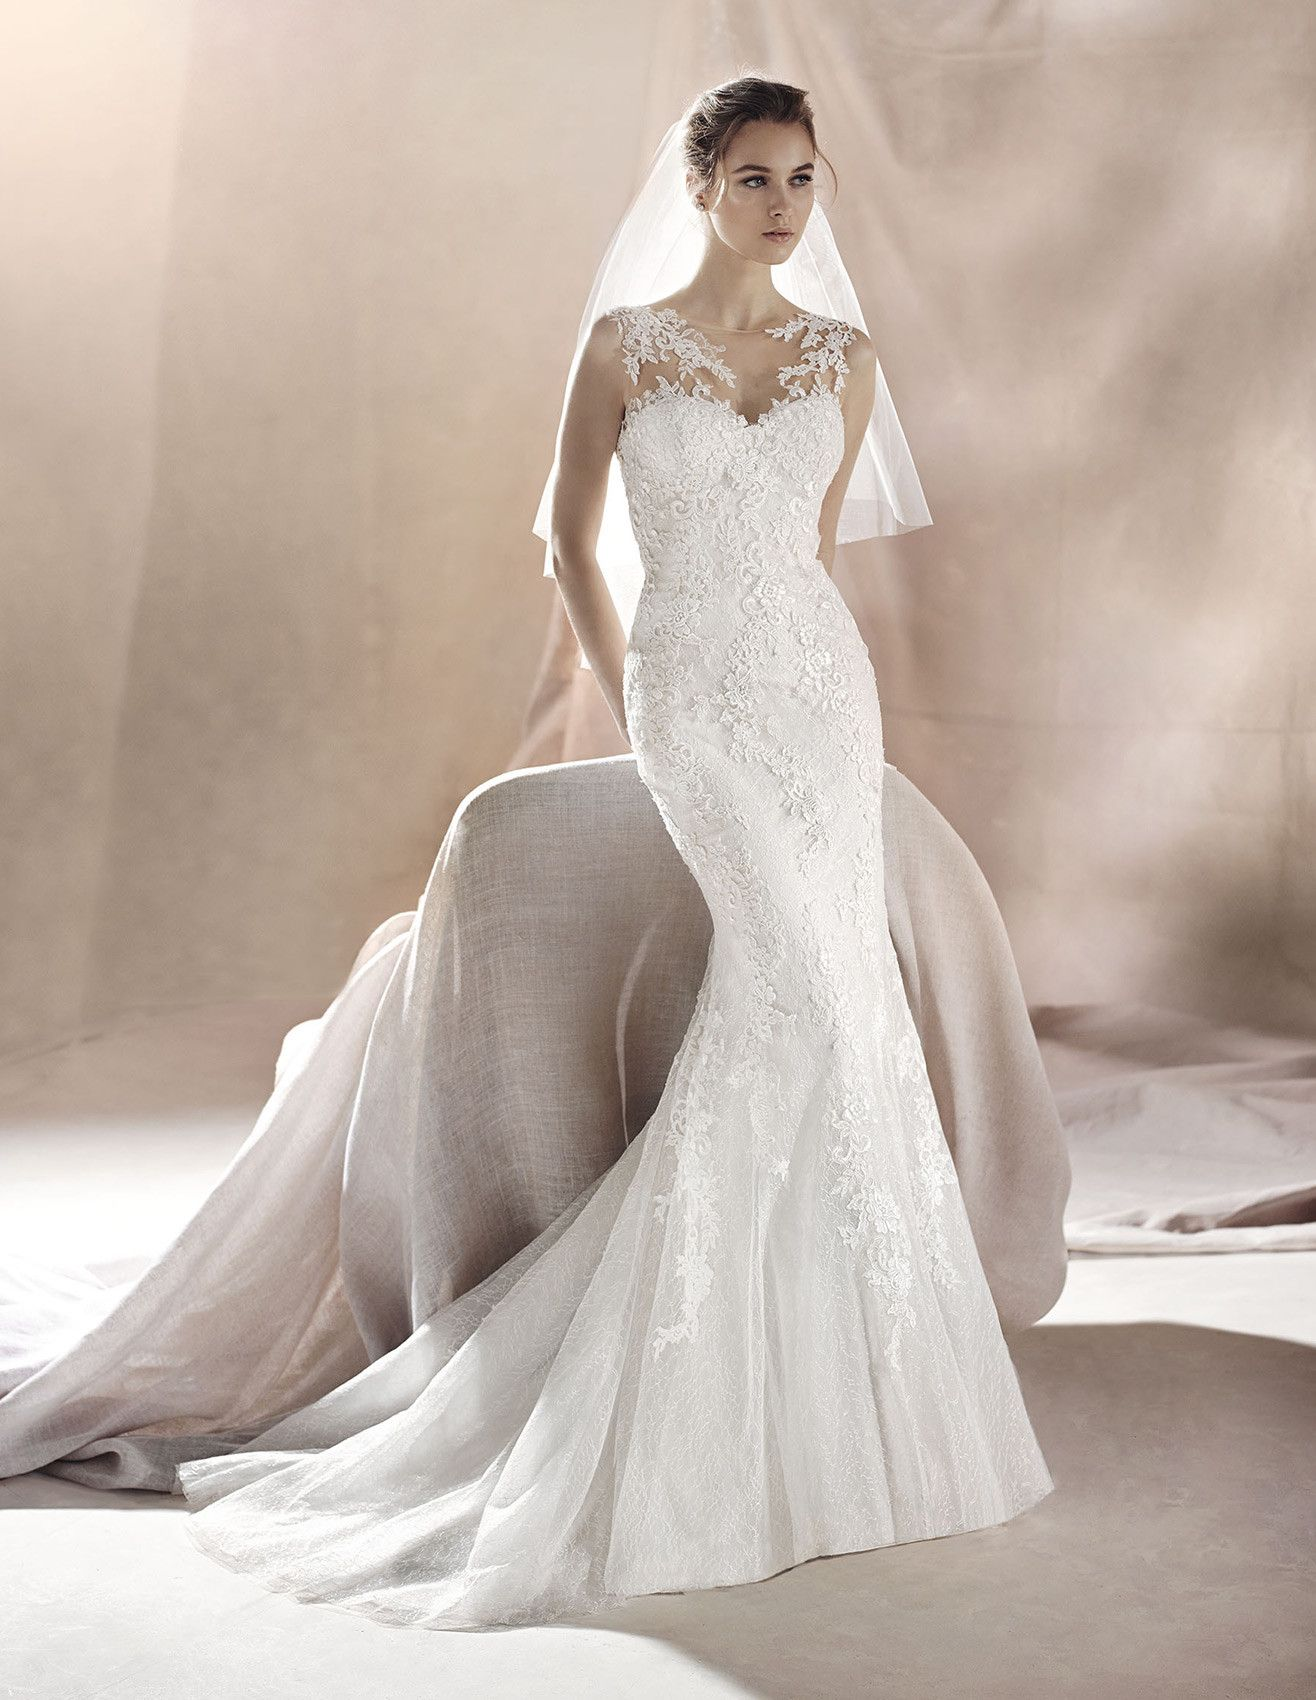 why is a wedding dresses outfit generally white colored wonderful